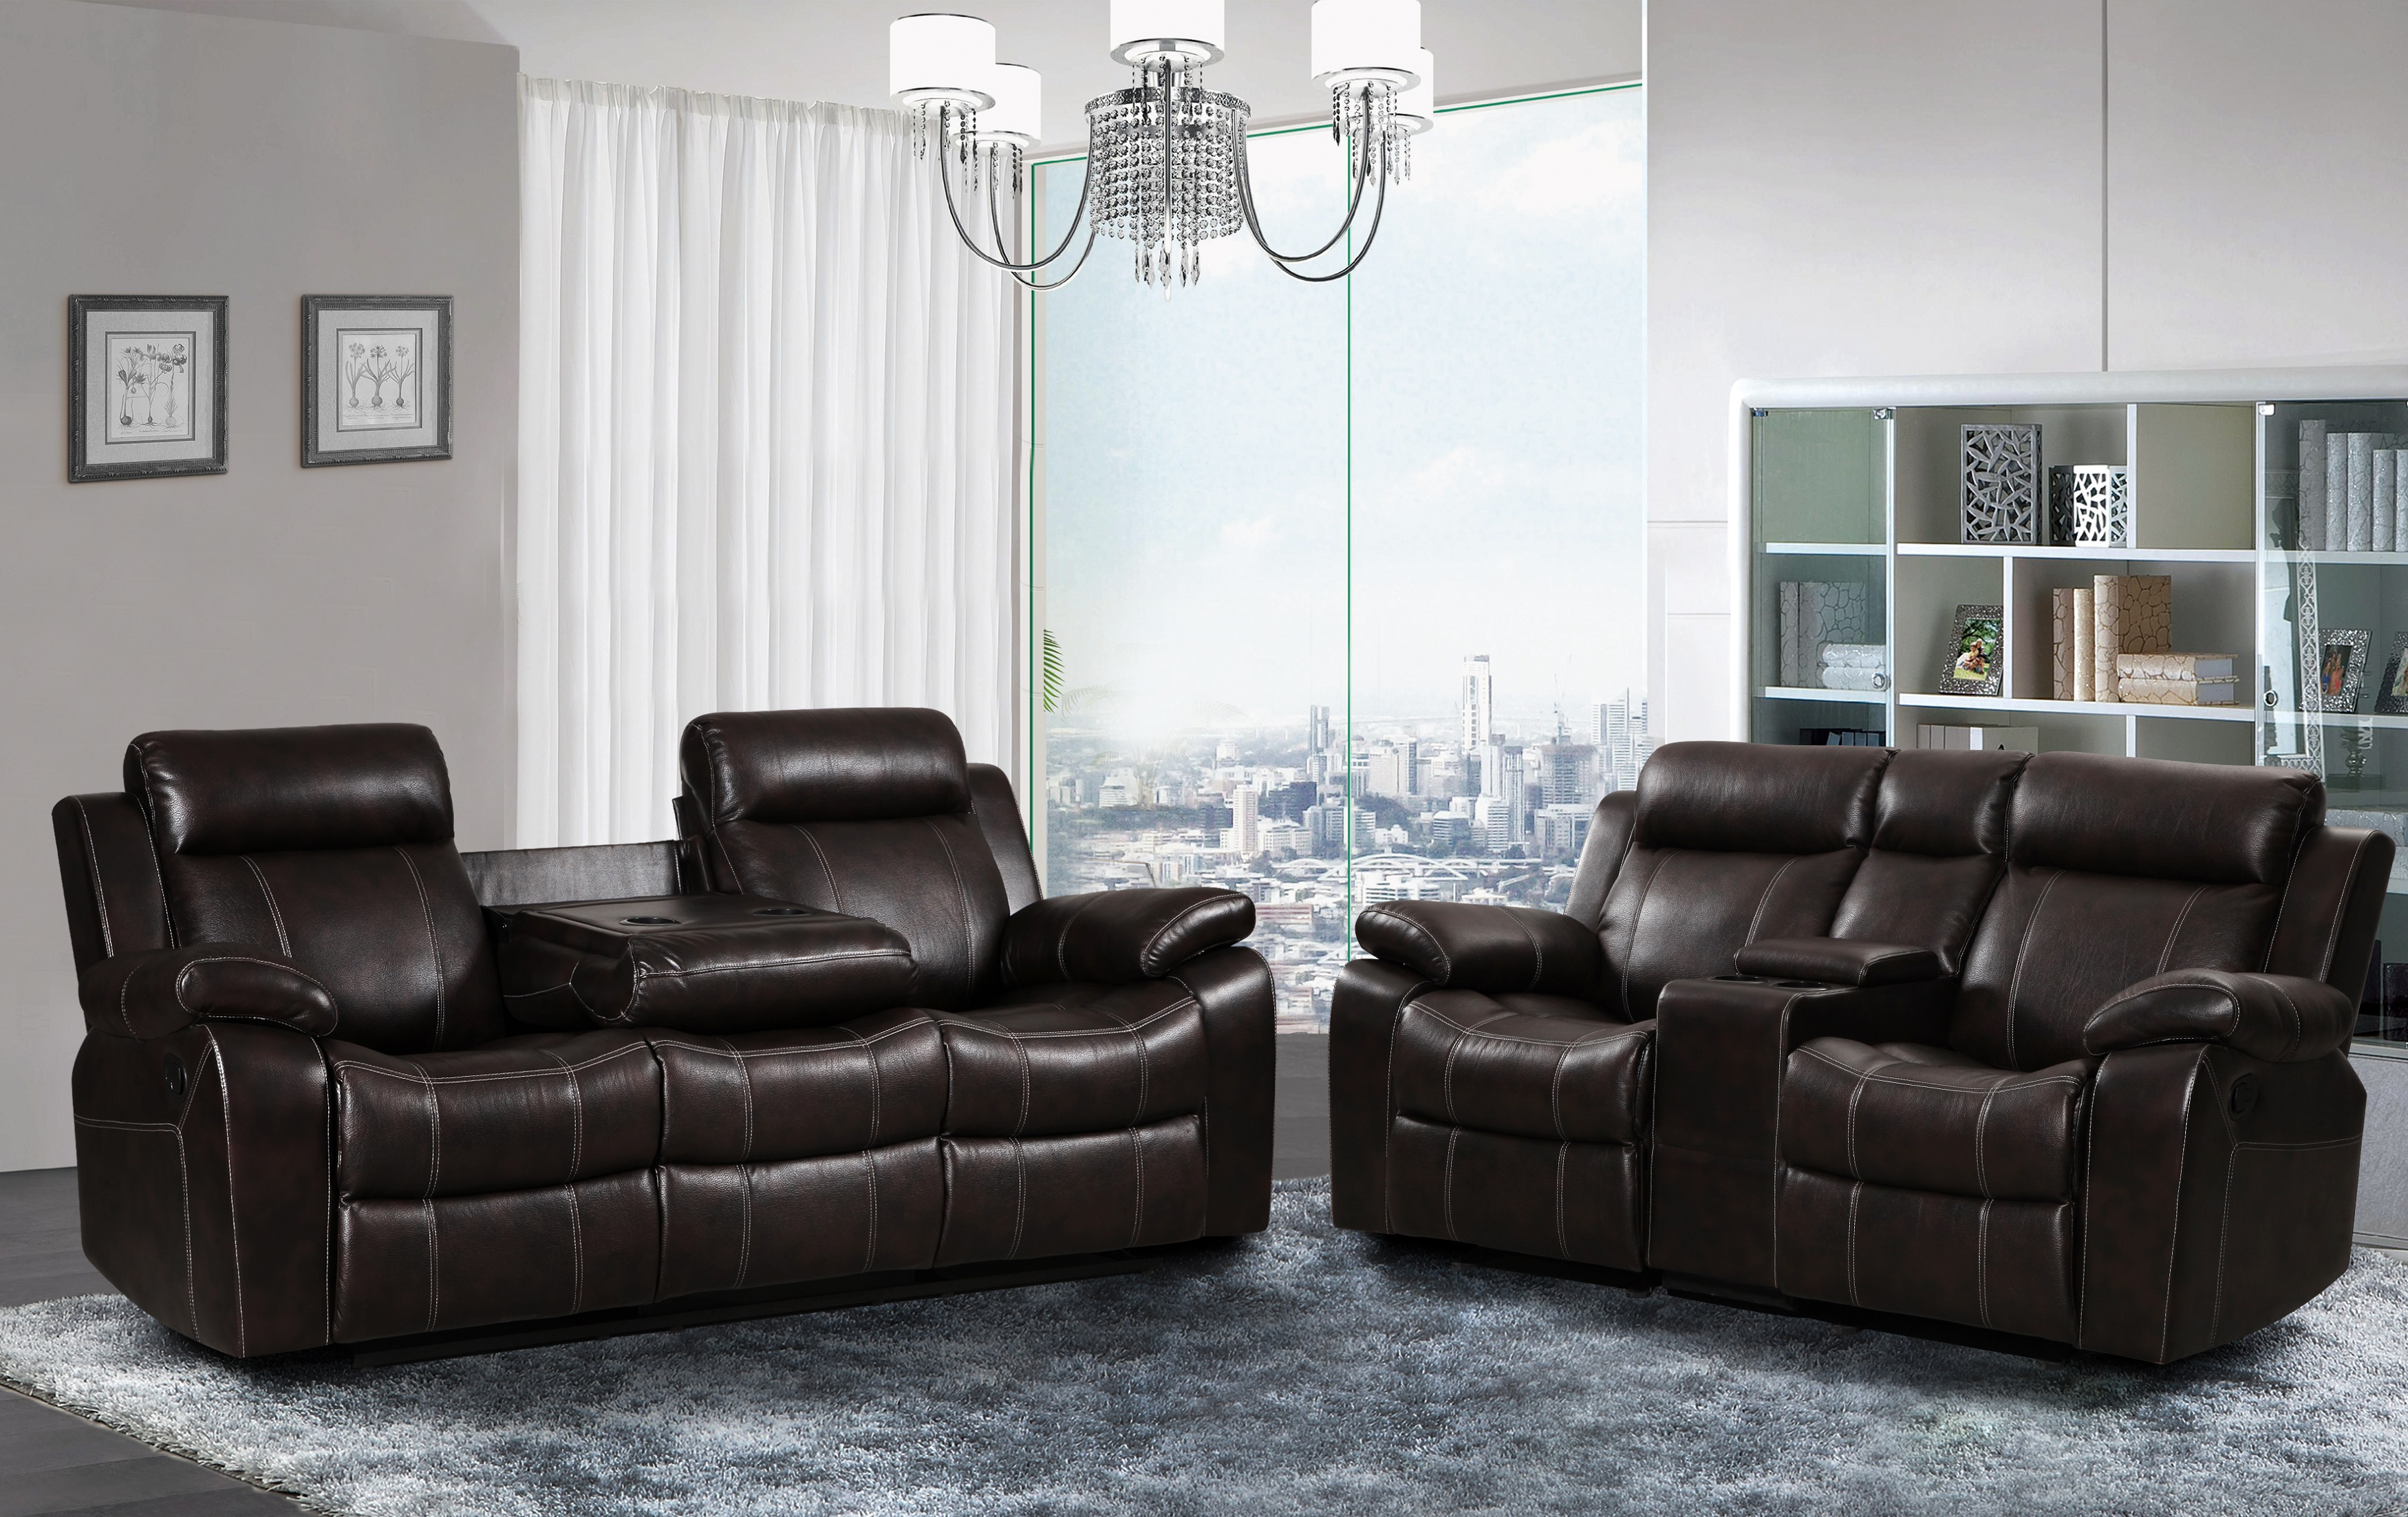 Vivienne Dark Brown Leather Air 2 pc Reclining Sofa and Loveseat set  sc 1 st  Walmart : reclining sofa and loveseat sets - islam-shia.org